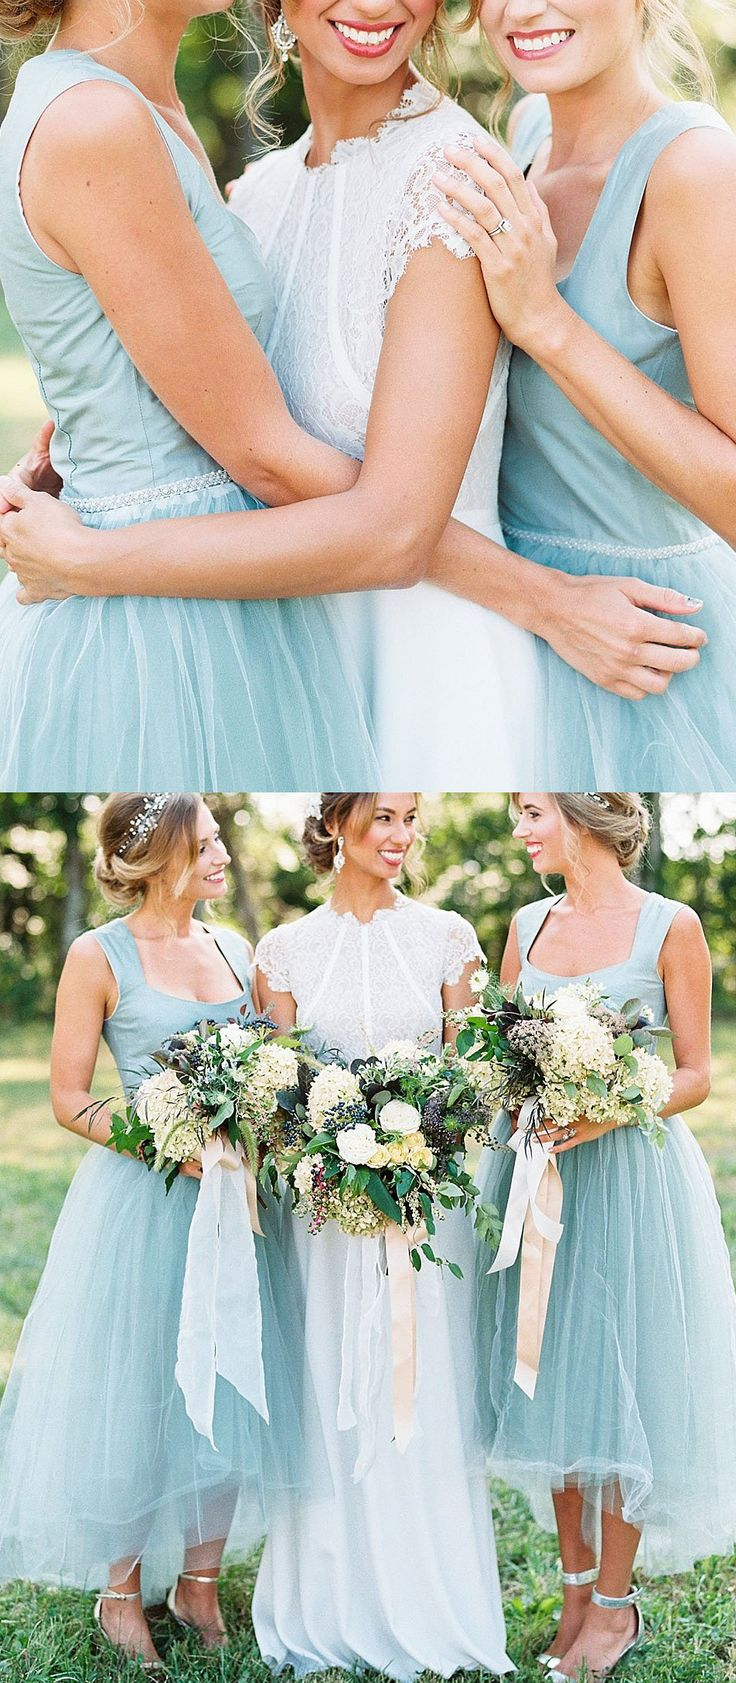 Blue Bridesmaid Dresses, Sexy Bridesmaid Dresses, Bridesmaid Dresses Blue, Light Blue Bridesmaid Dresses, Long Bridesmaid Dresses, Light Blue dresses, Sexy Long Dresses, Sleeveless Bridesmaid Dresses, Pleated Bridesmaid Dresses, Asymmetrical Bridesmaid Dresses